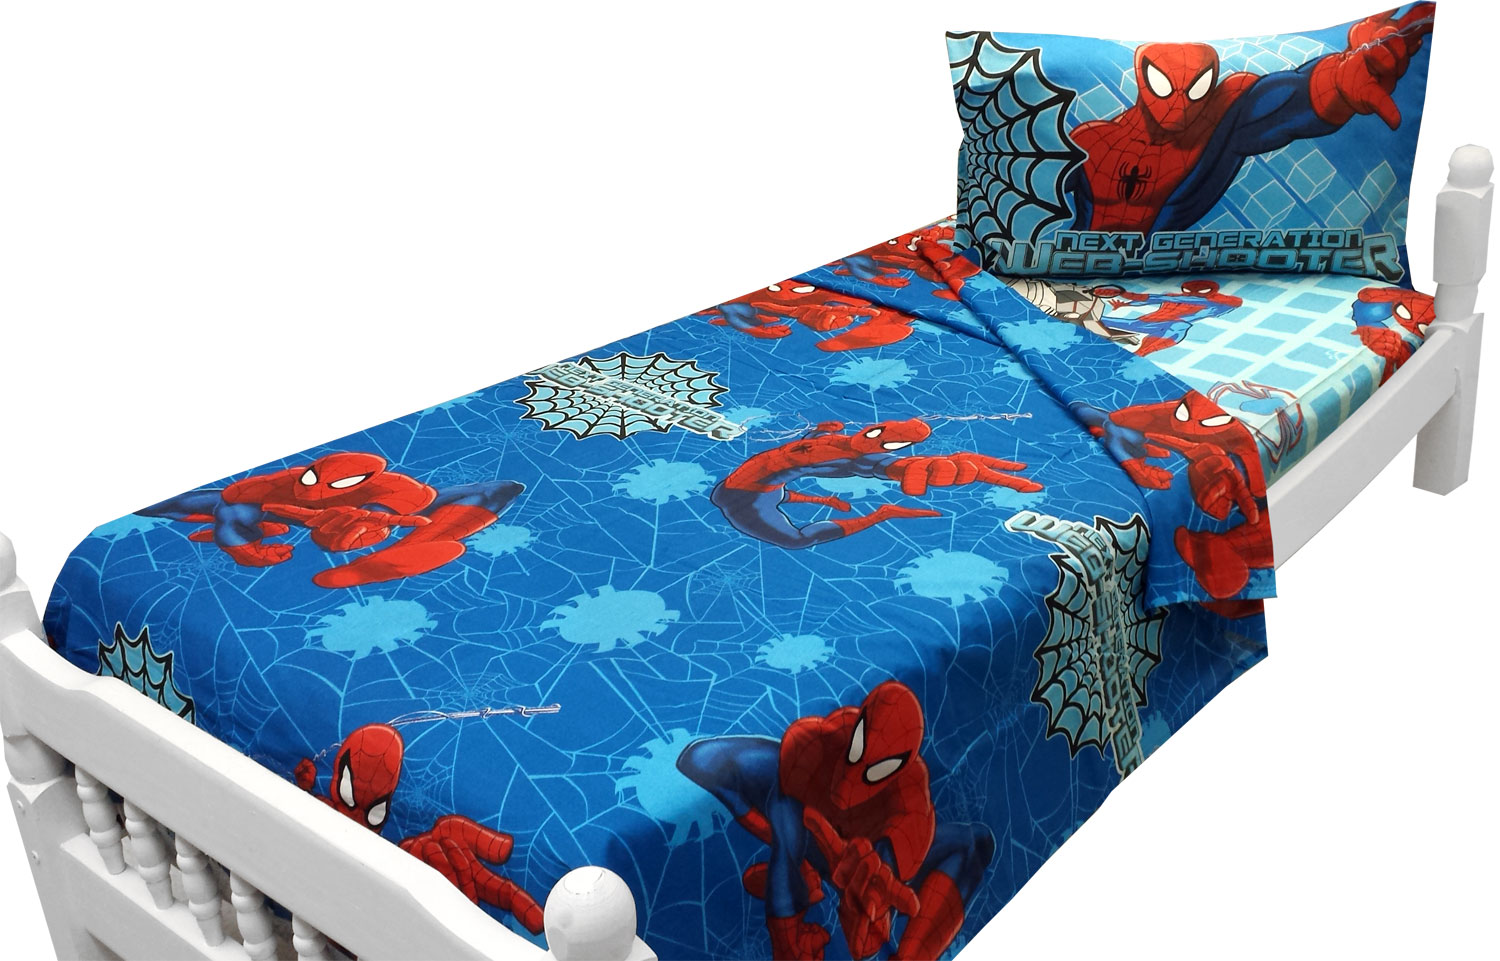 Ultimate Spider-Man Twin Bed Sheets - 3pc Marvel Comics Bedding Accessories